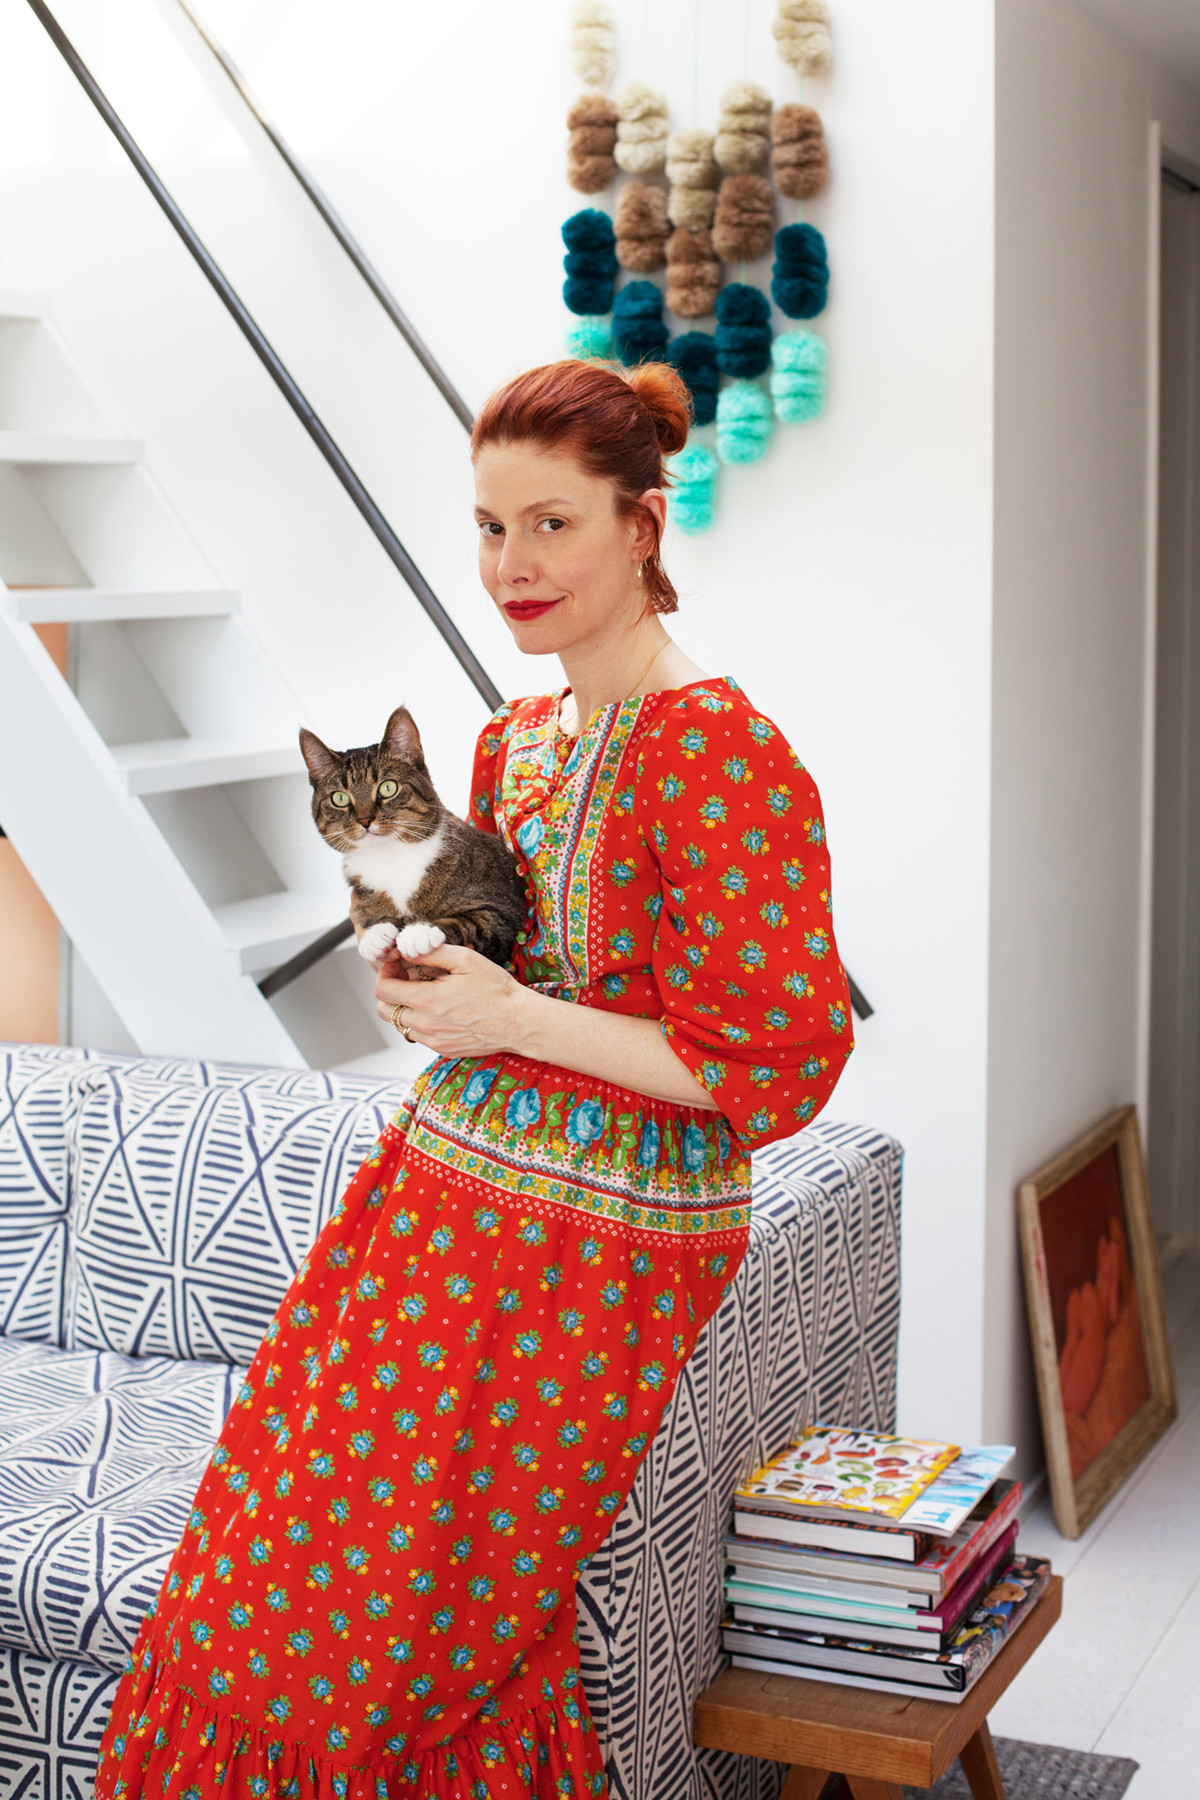 Refinery 29 co-founderChristene Barberich sits at home with her cat Phoebe.